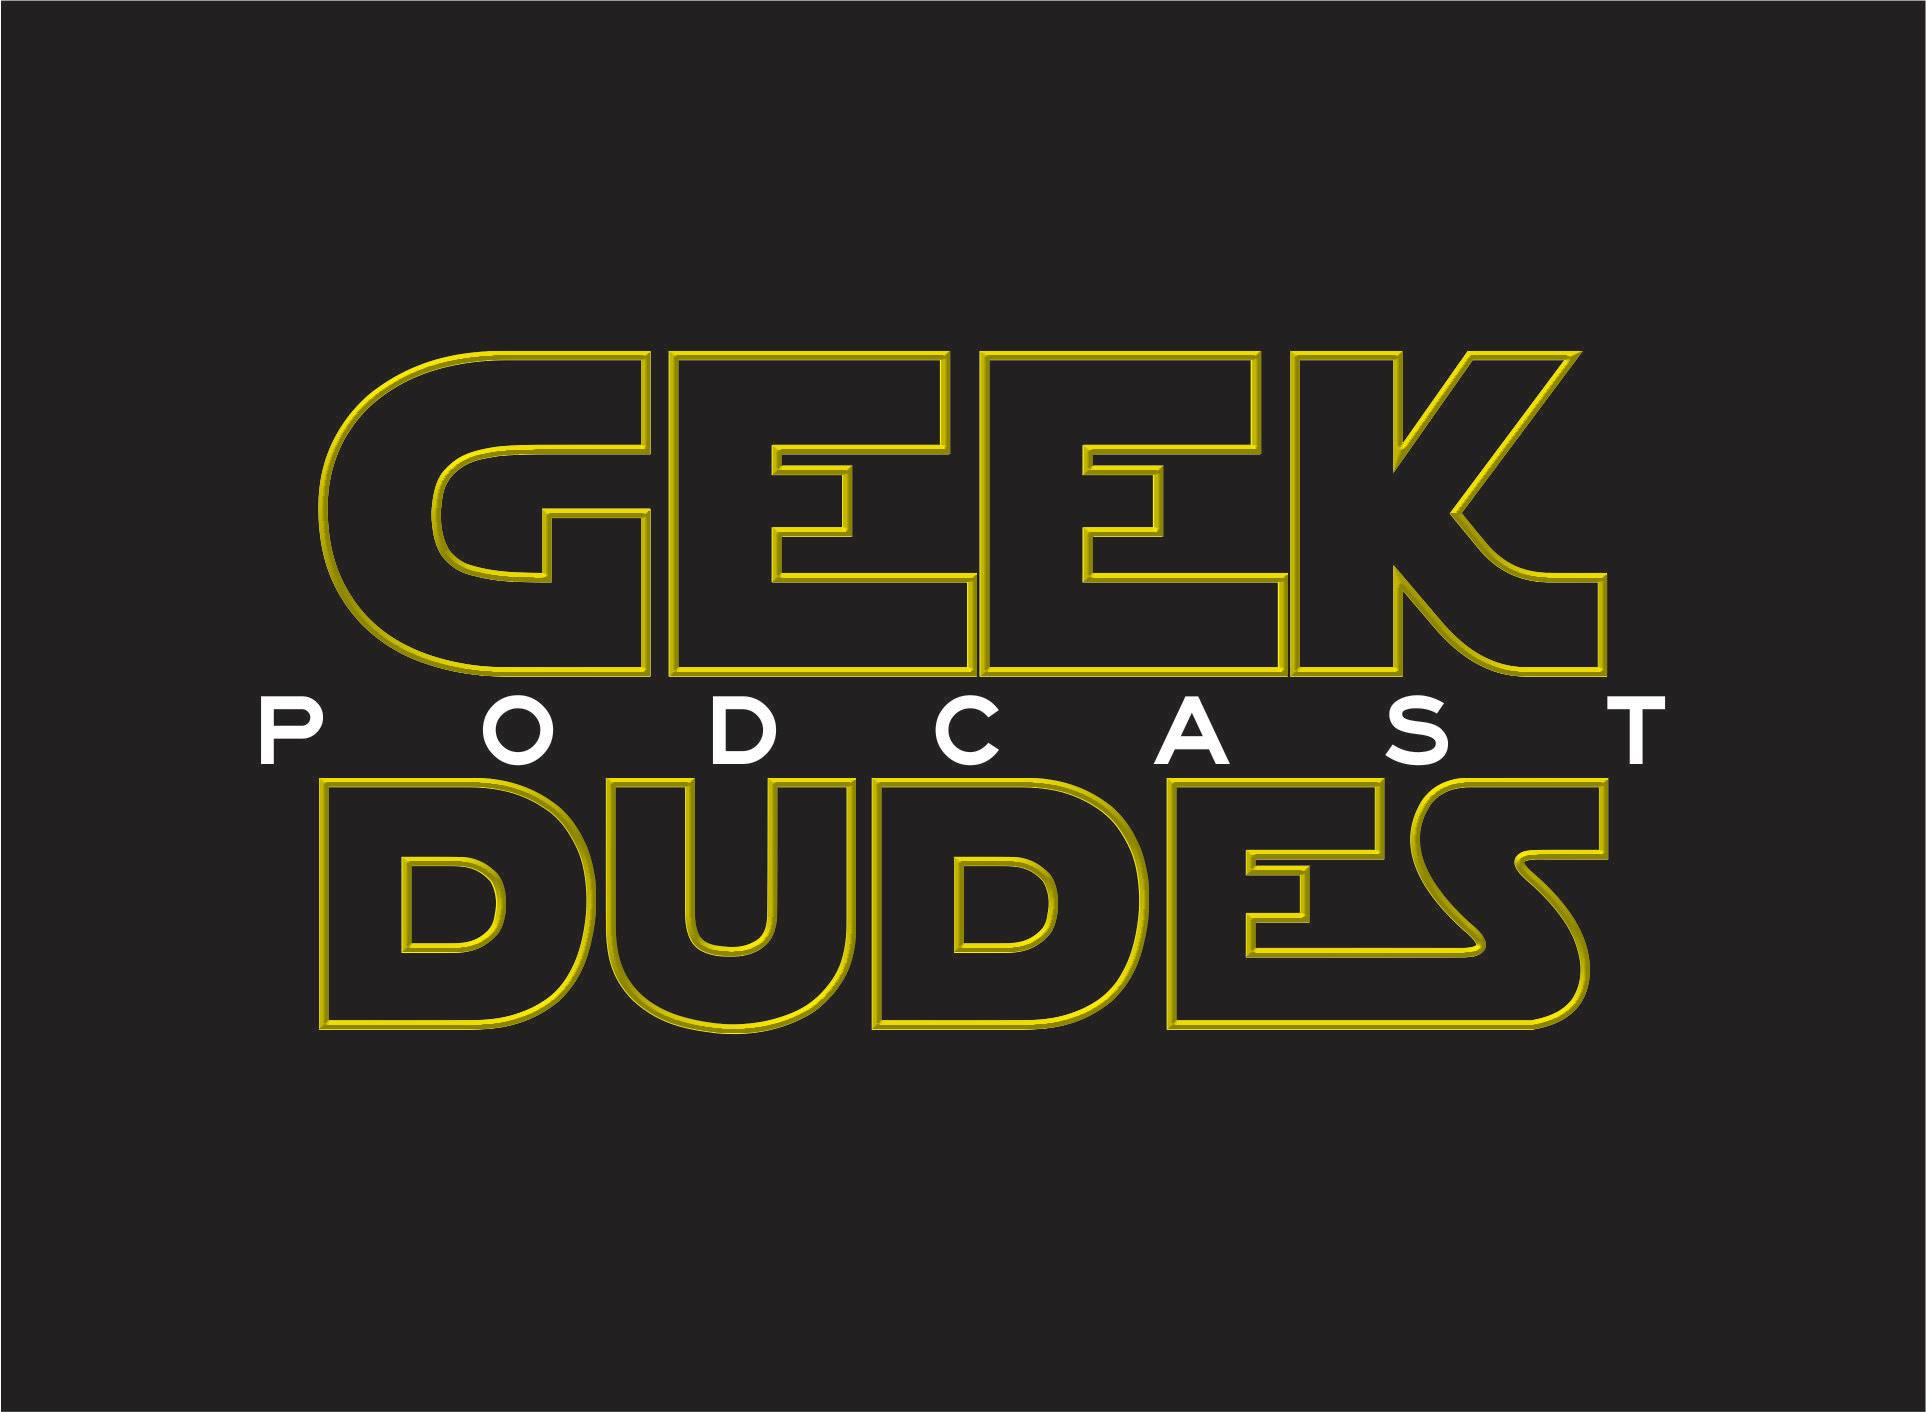 Geek Dudes S4 Ep22 The Force Awakens Review